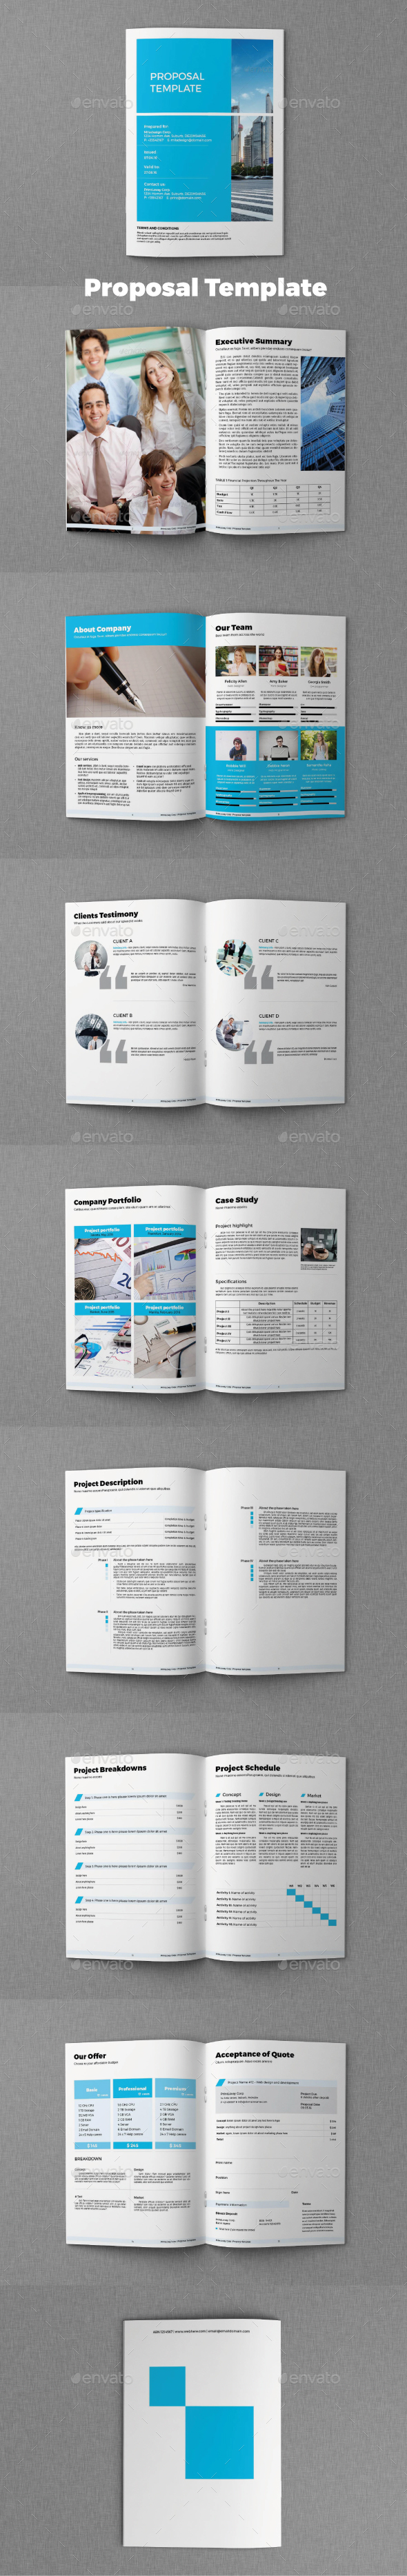 Proposal Template Proposal Templates Template And Business Proposal